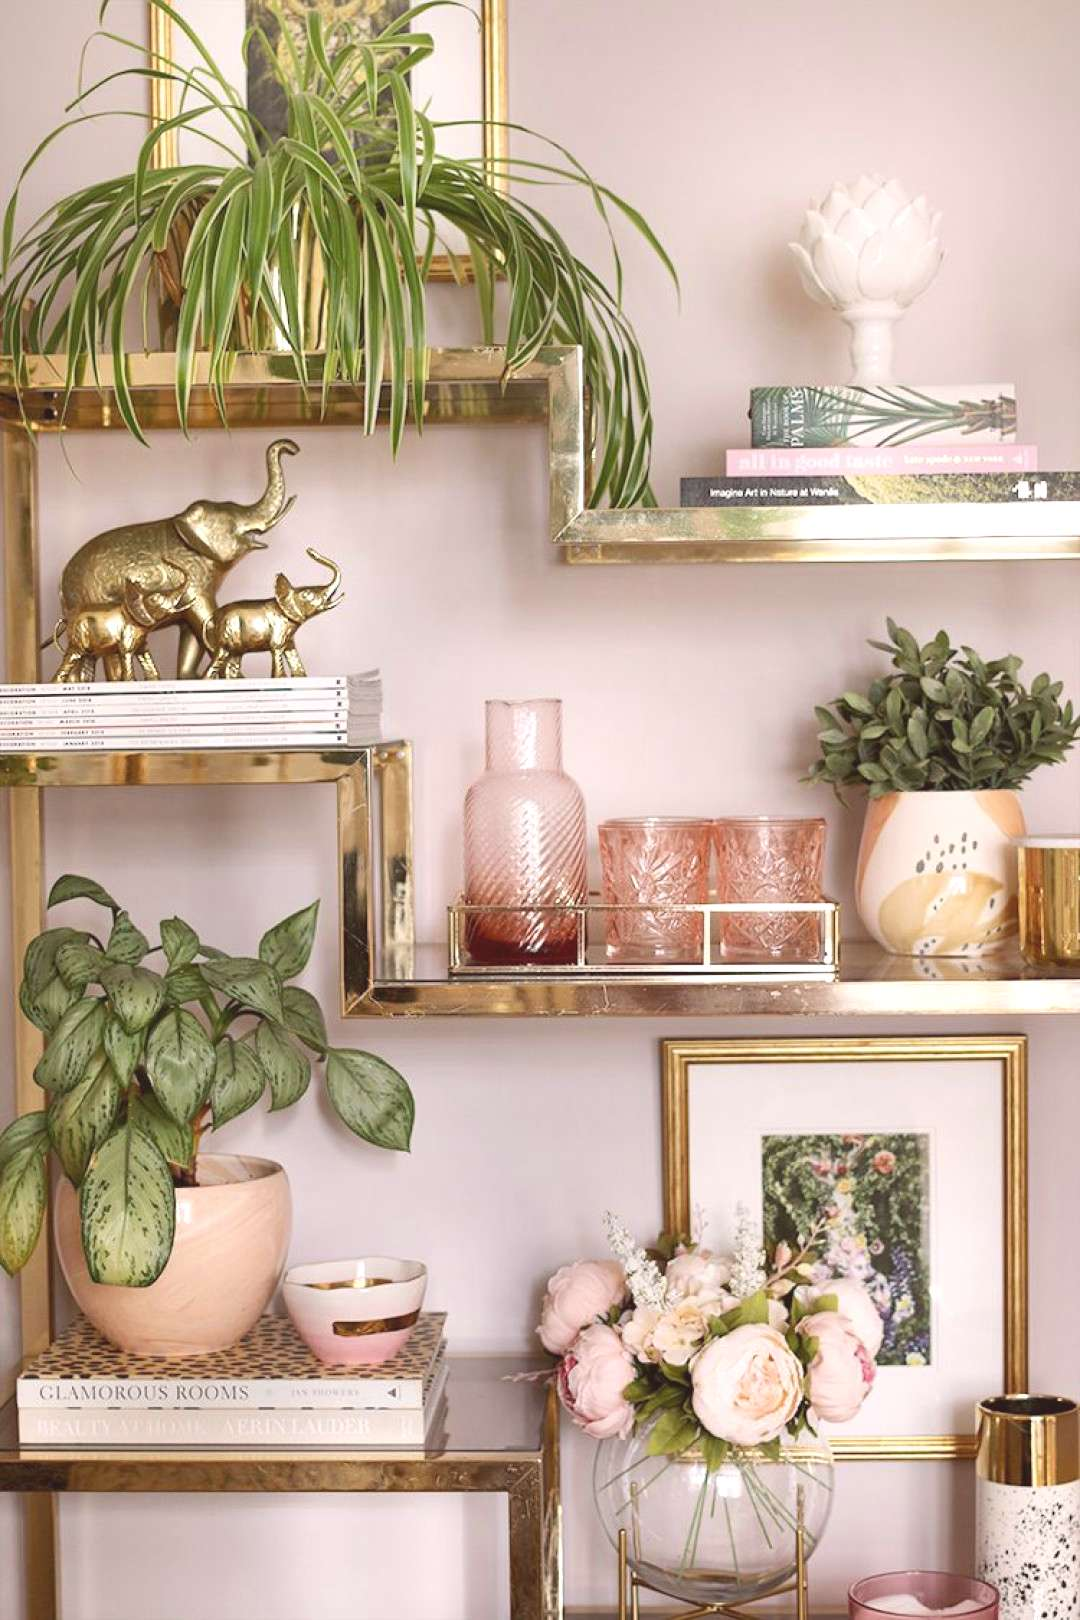 shelf styling - how to create a cohesive theme with accessories in your home